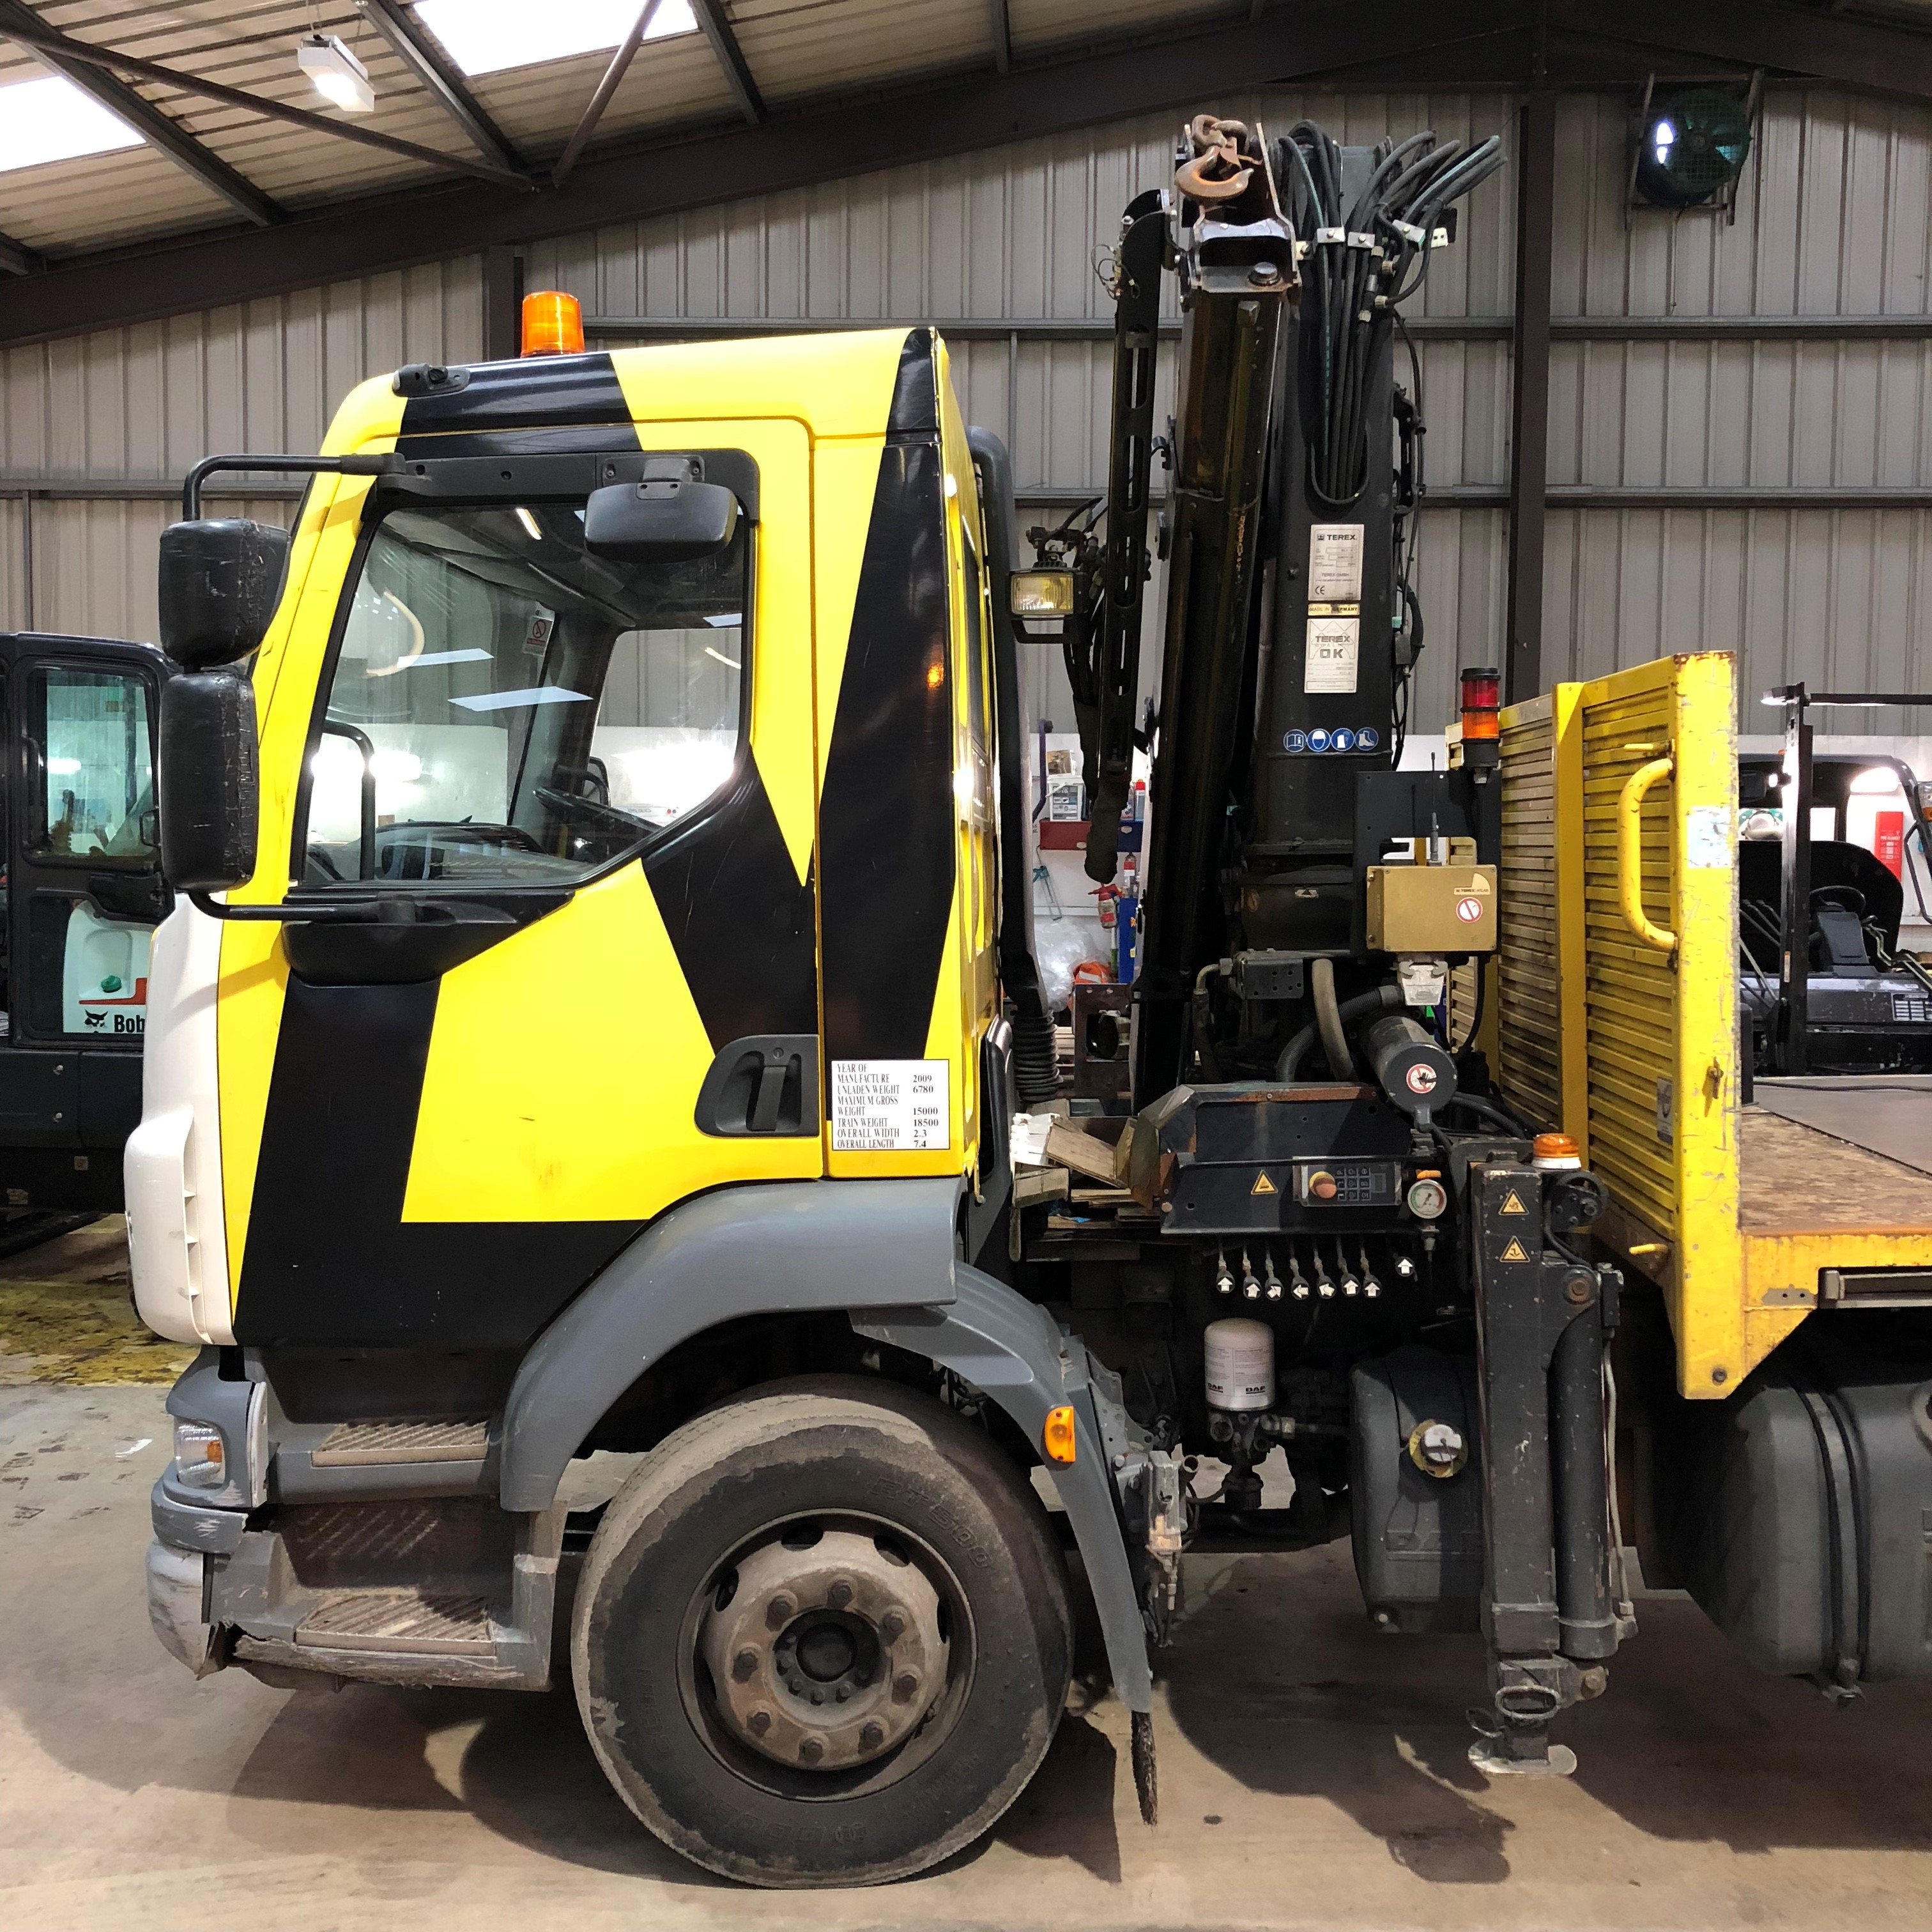 2009 DAF LF55-180 with Atlas/Terex Crane Image